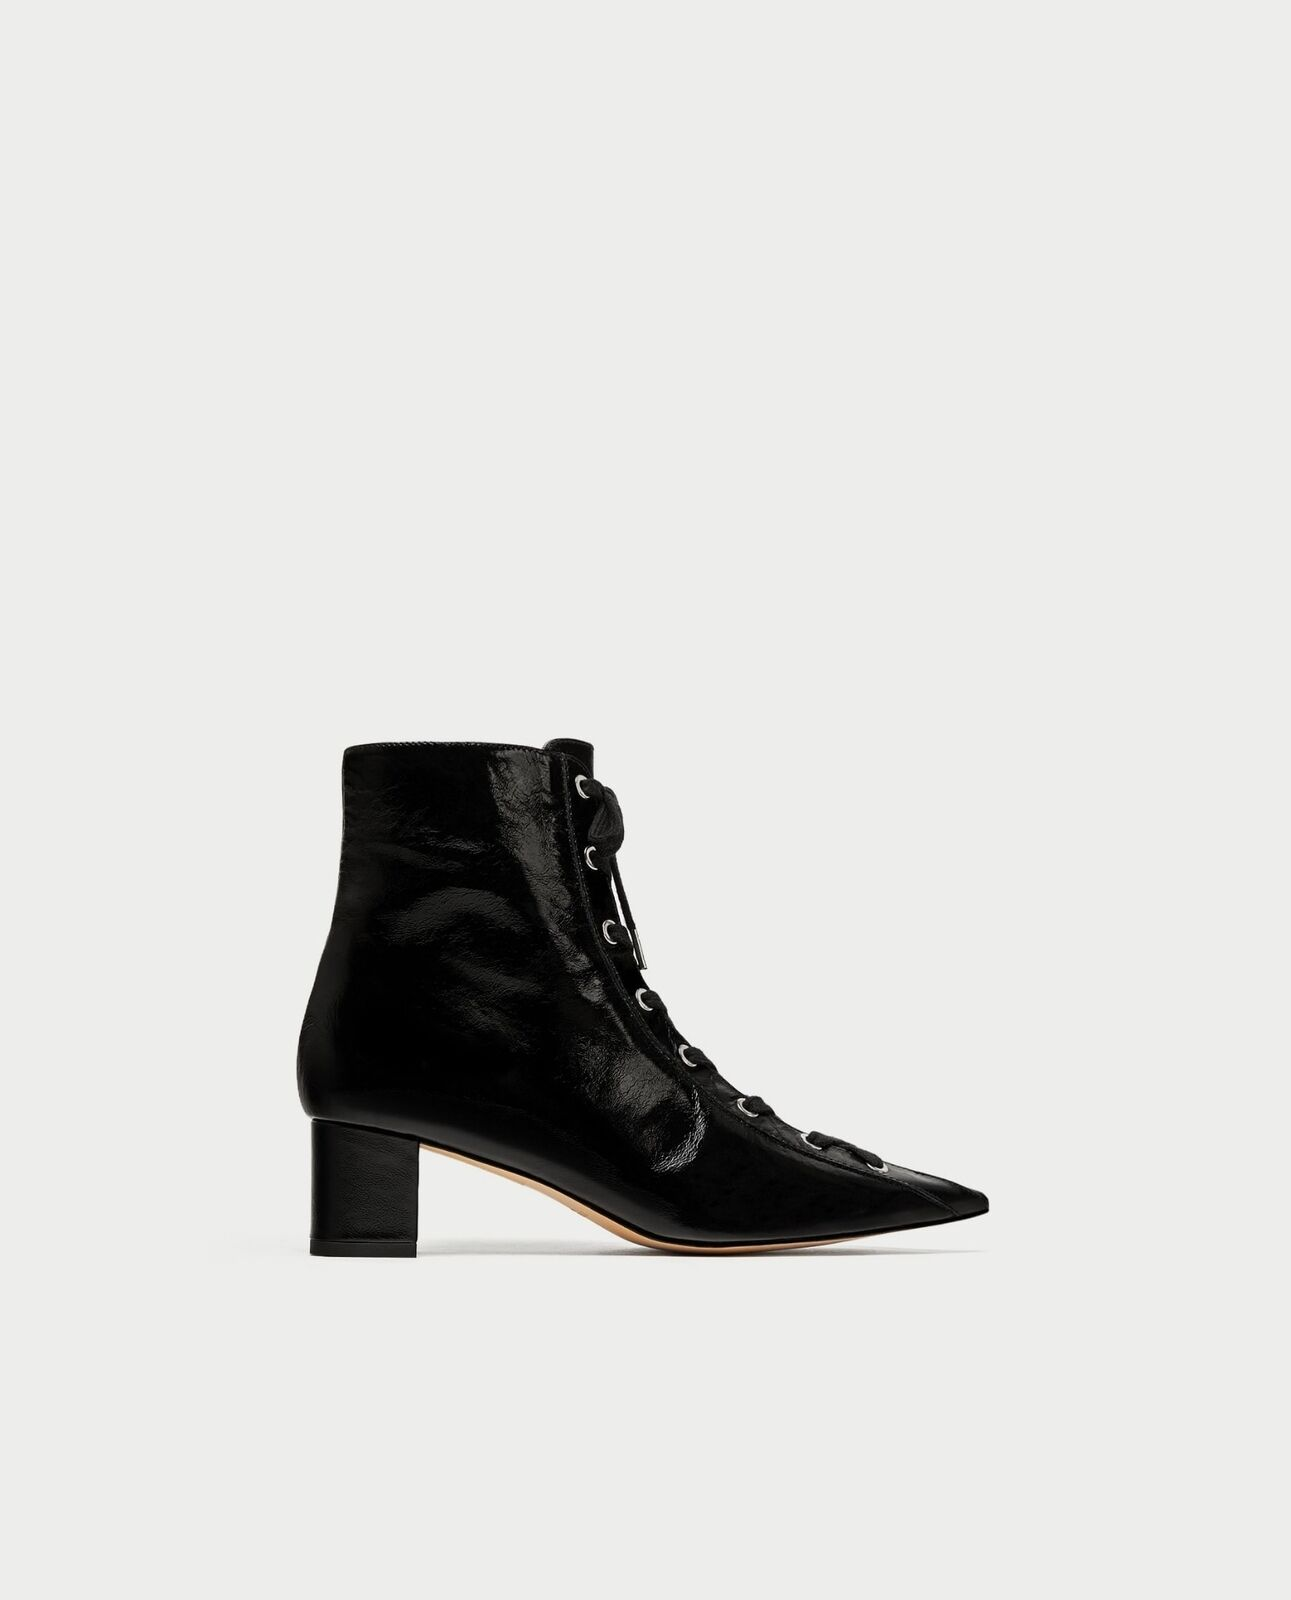 BNWT ZARA Lace Up Leather High Heel Ankle Boot REF.6078 201